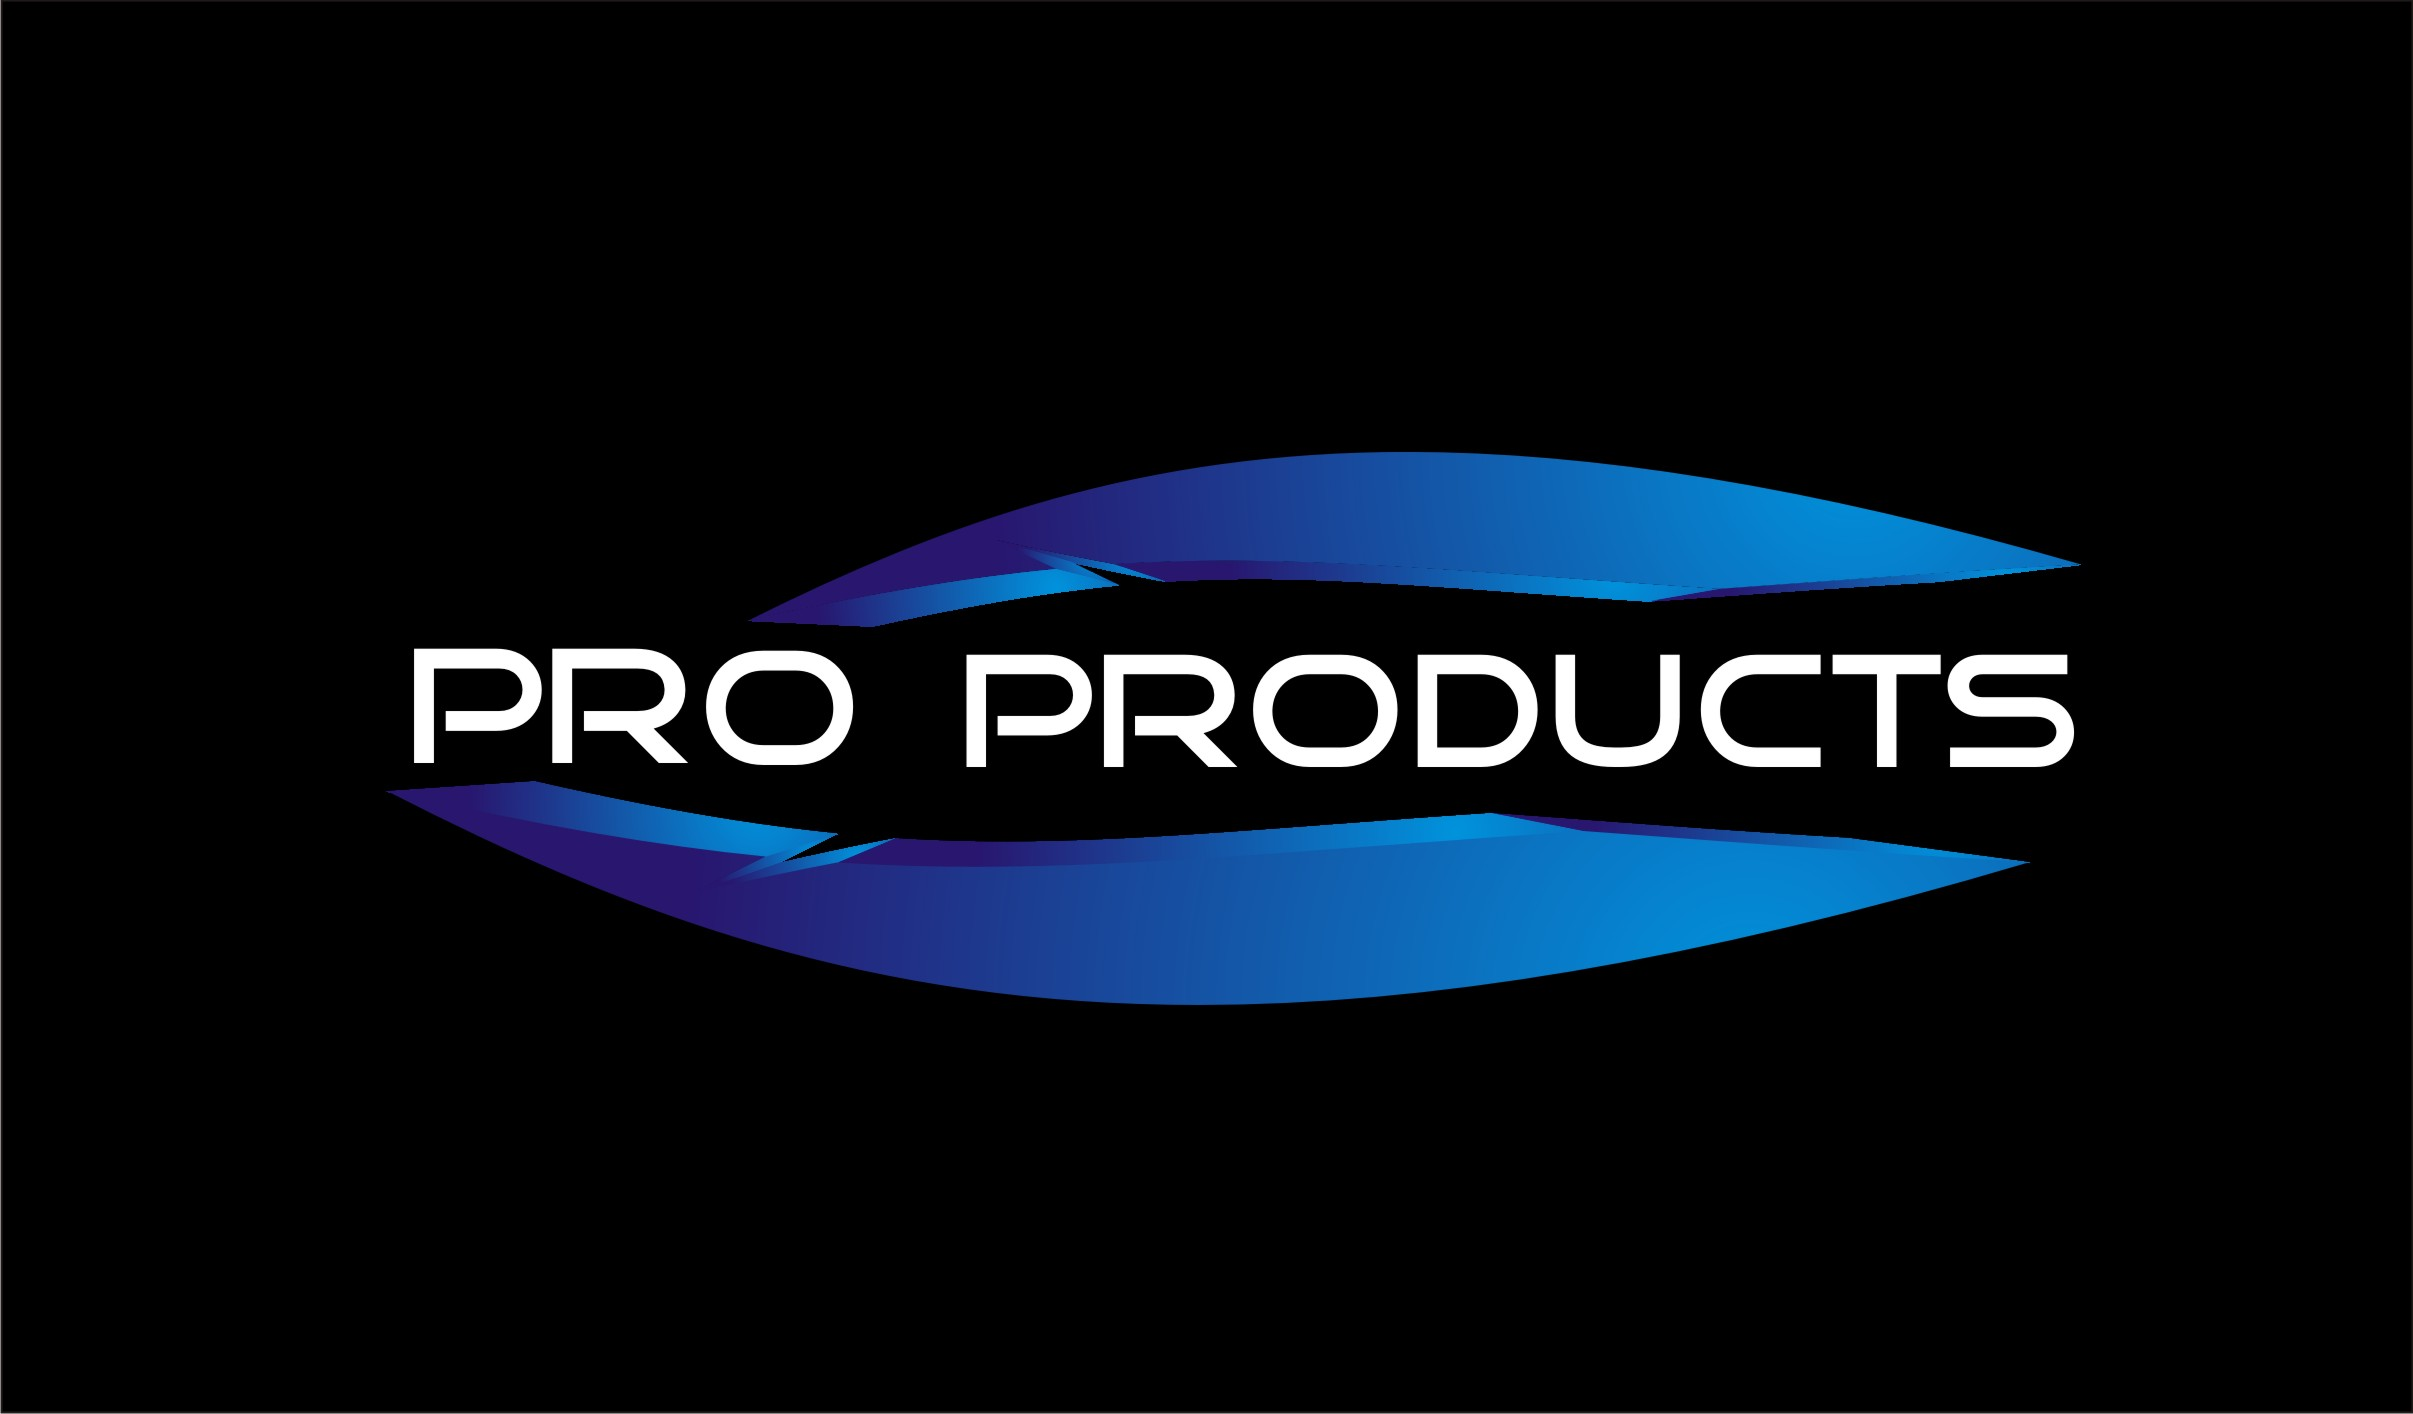 Logo Design by Josri Vengeance - Entry No. 67 in the Logo Design Contest Fun yet Professional Logo Design for ProProducts.